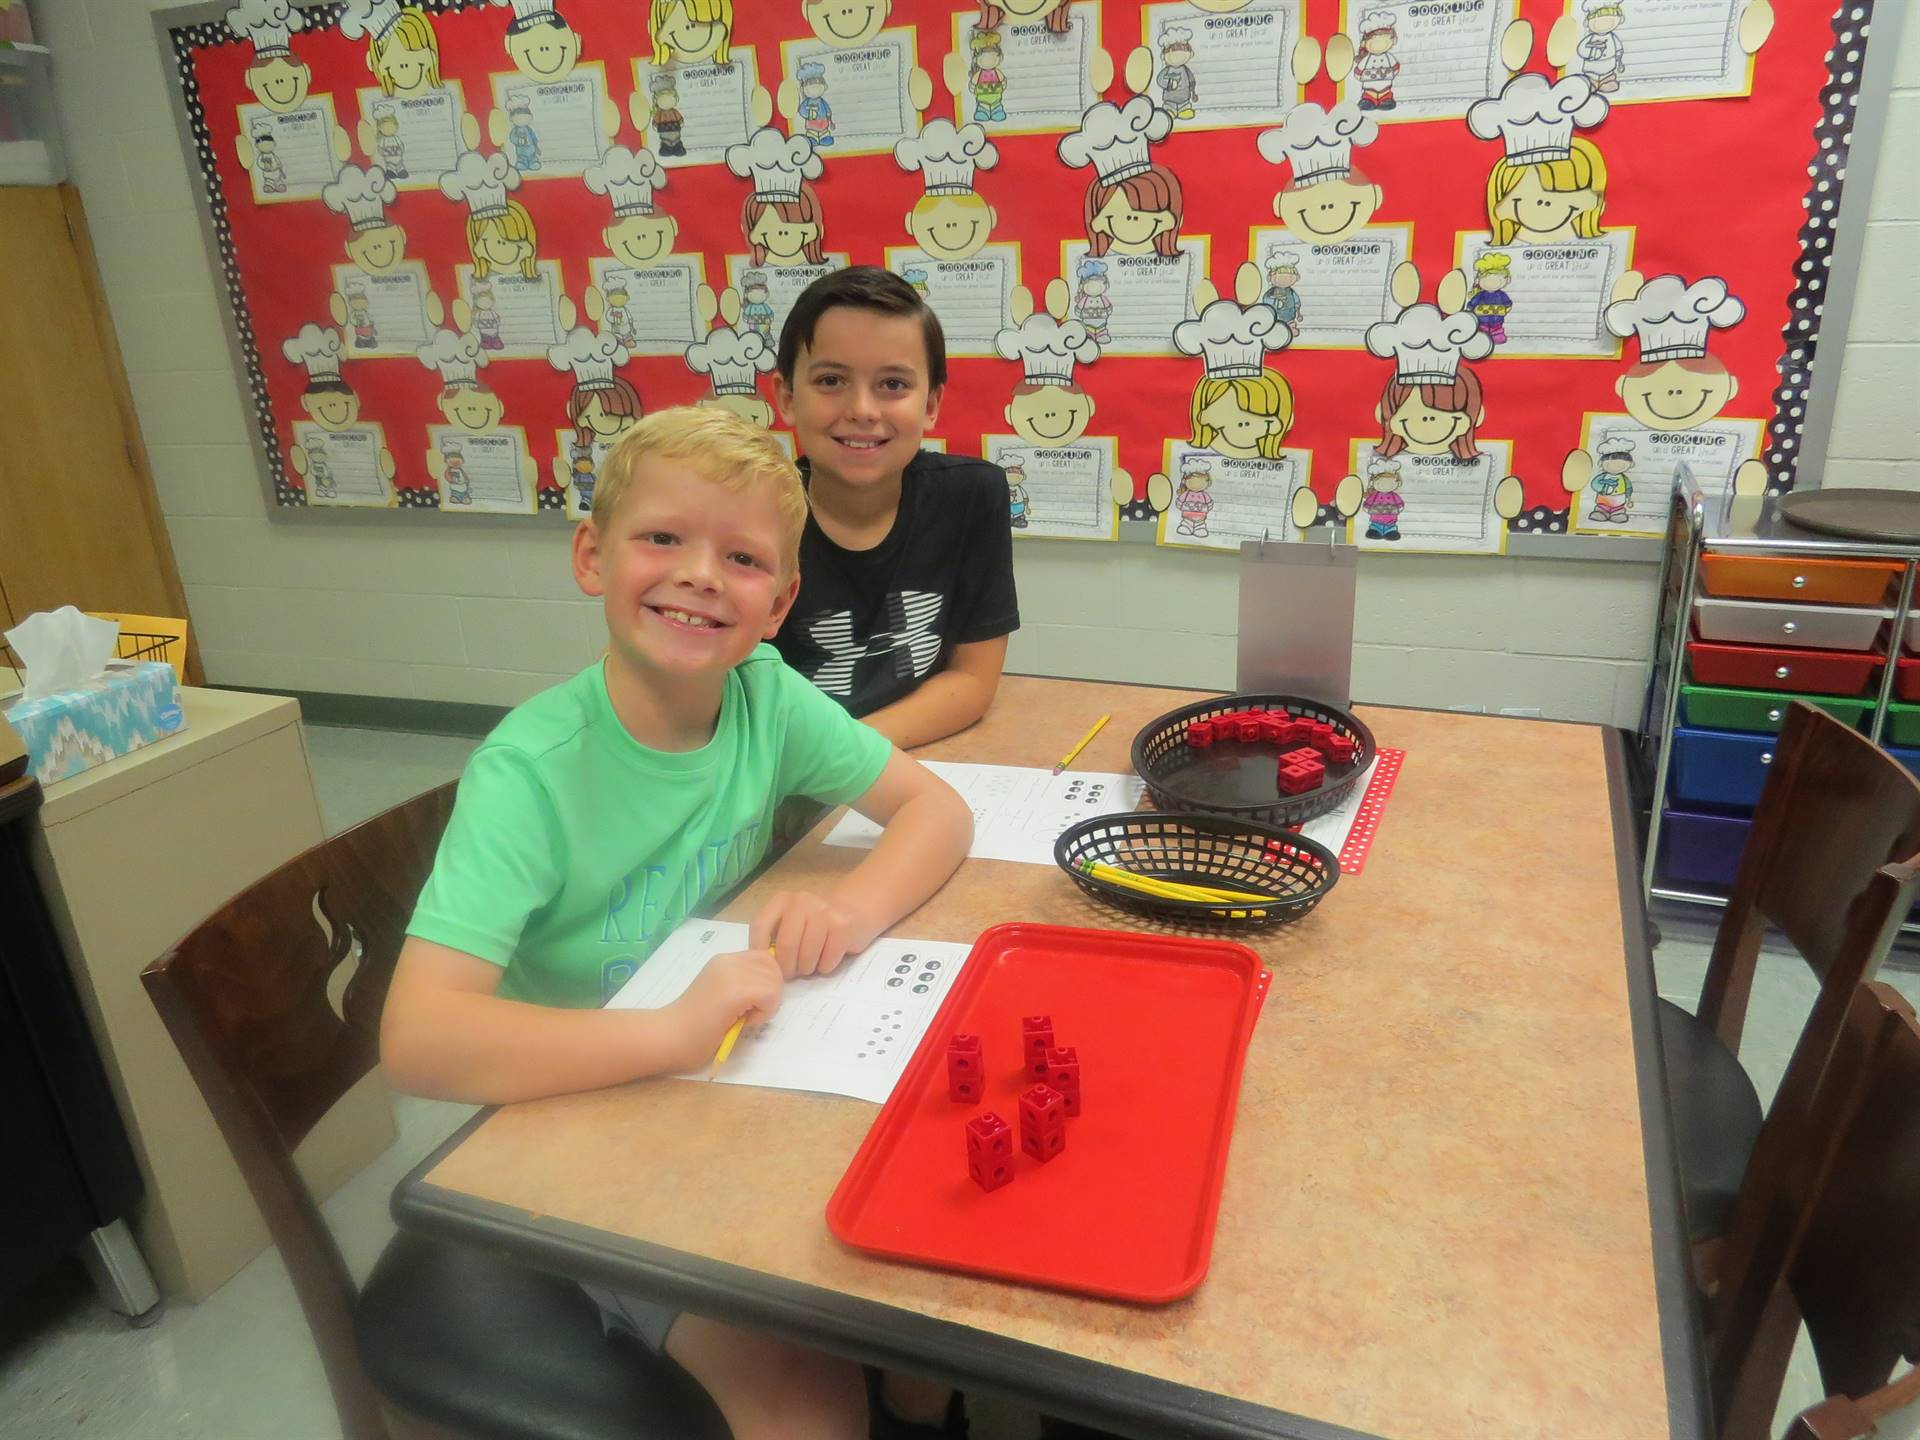 3rd Grade male students working in math class